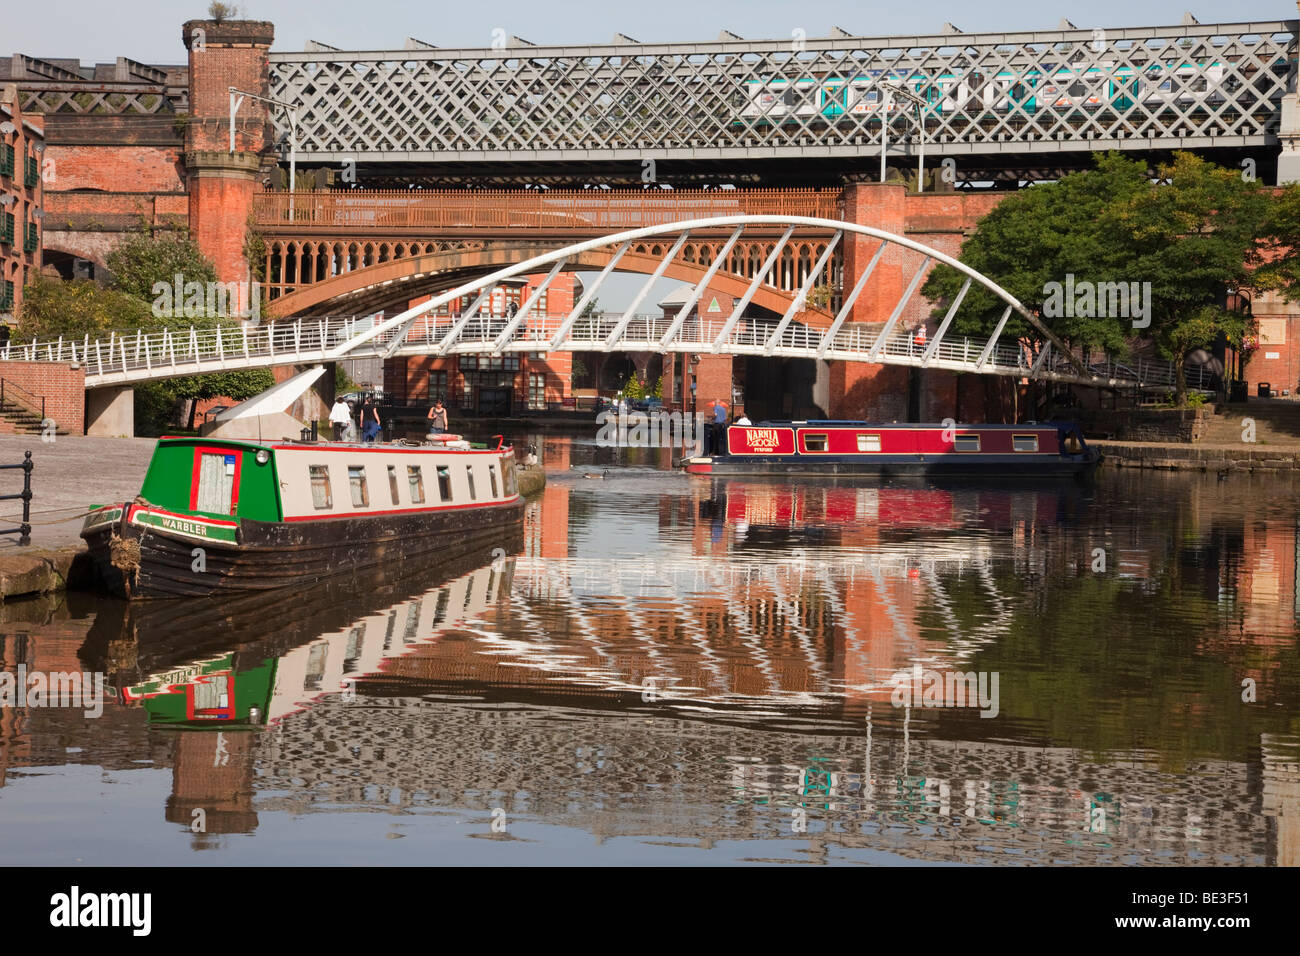 The Bridgewater Canal basin reflecting narrowboats and Merchants Bridge in conservation area. Castlefield Urban - Stock Image